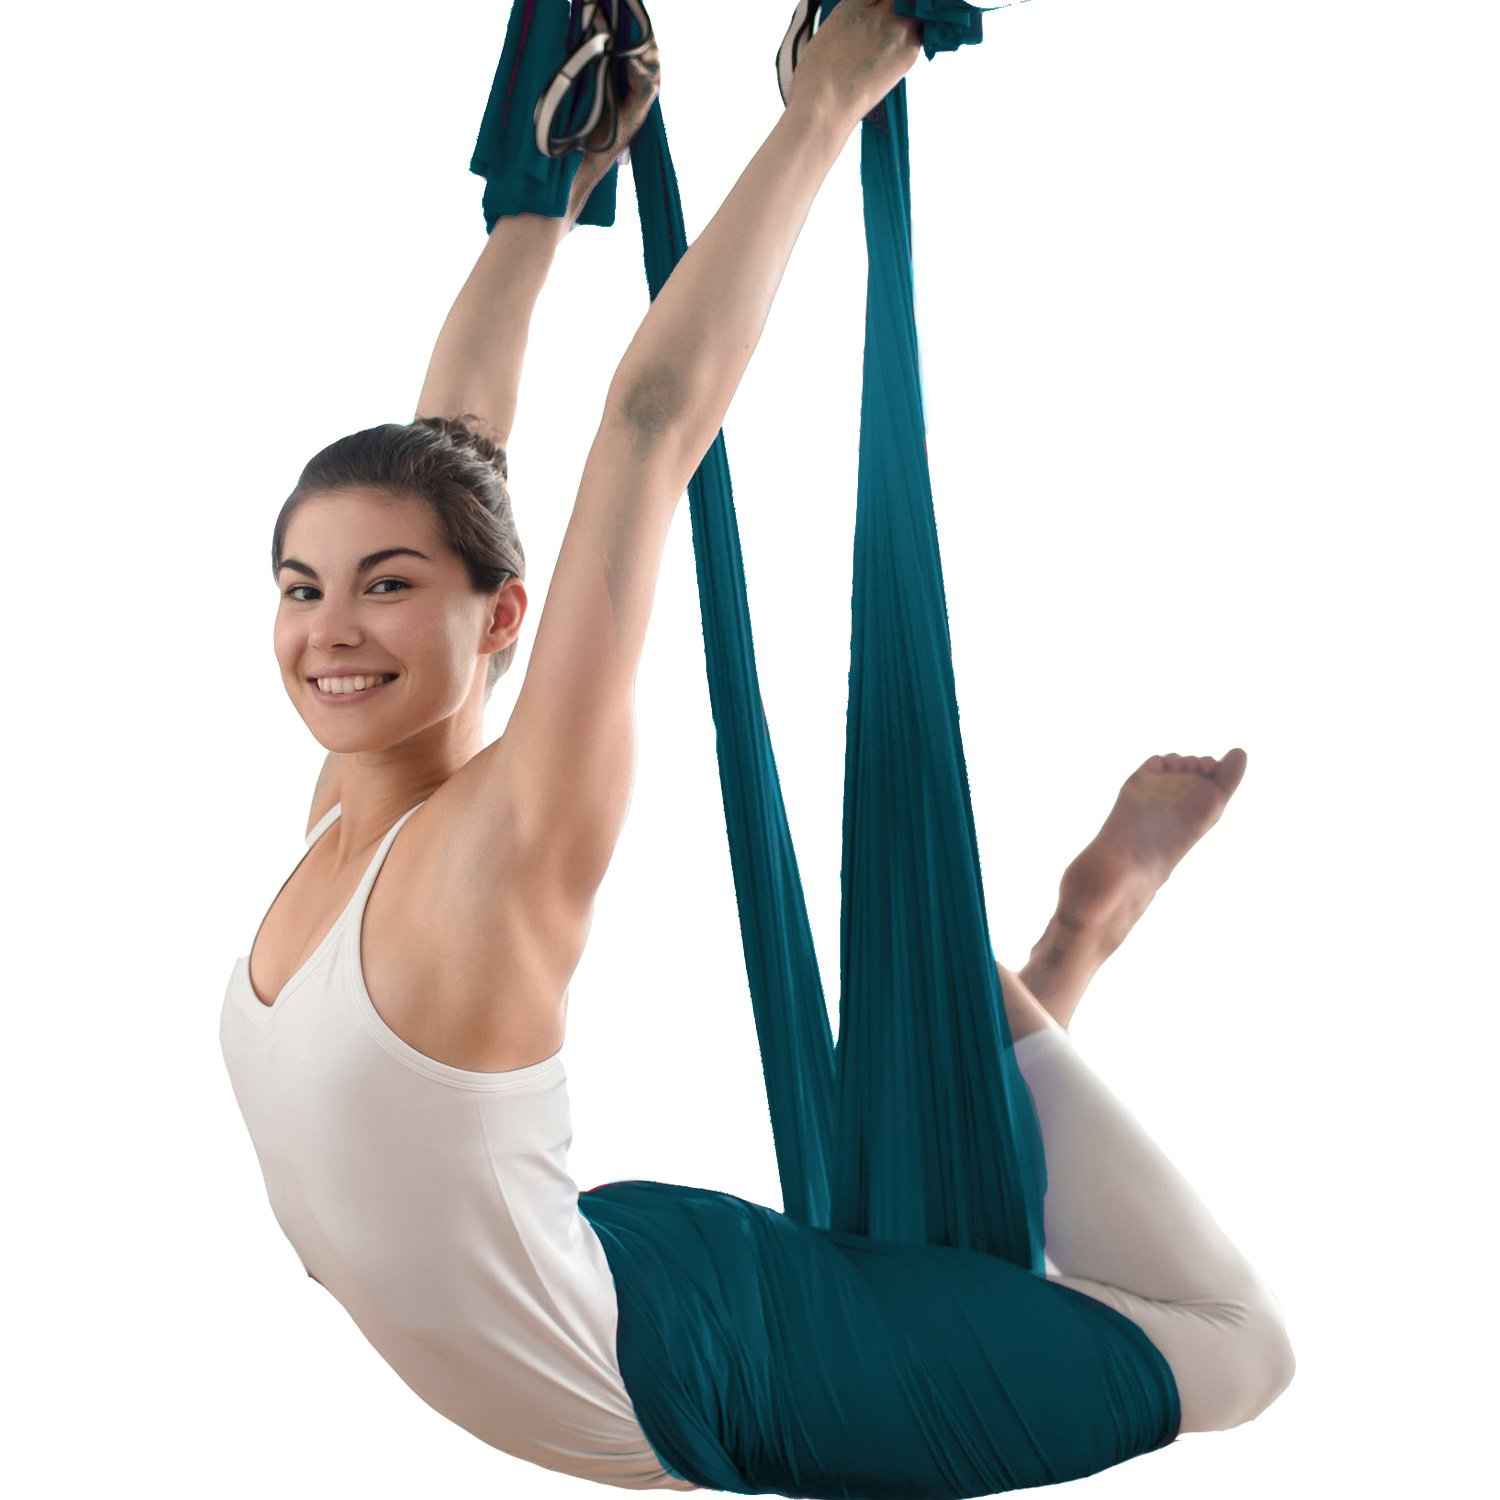 Aerial Yoga Hammock Carabiners Pose Guide Included Extension Straps Premium Aerial Silk Yoga Swing Antigravity Yoga Improved Flexibility /& Core Strength Inversion Exercises